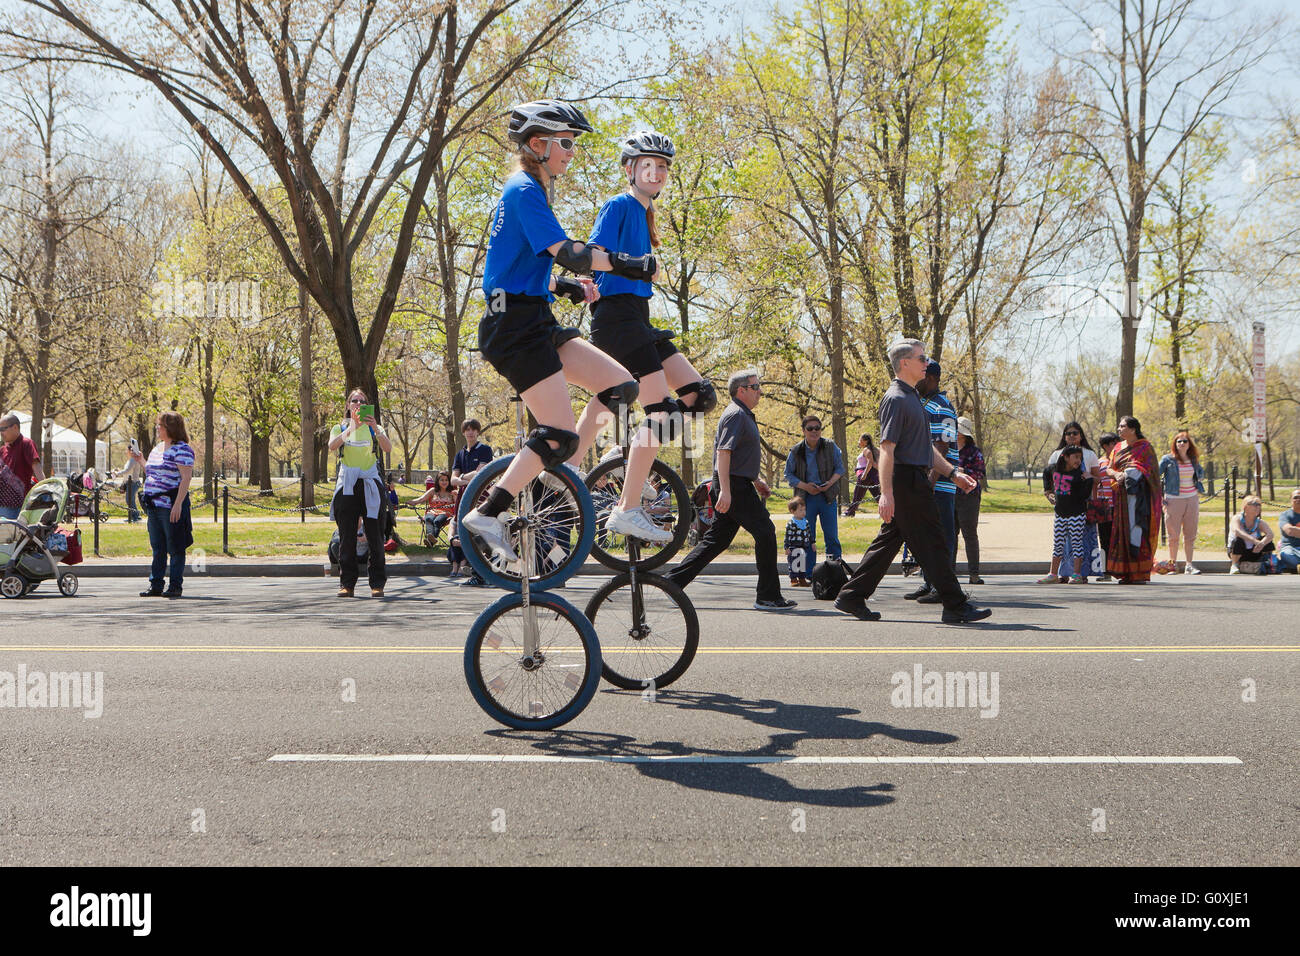 Two wheeled unicyclists at a cultural festival parade - USA - Stock Image